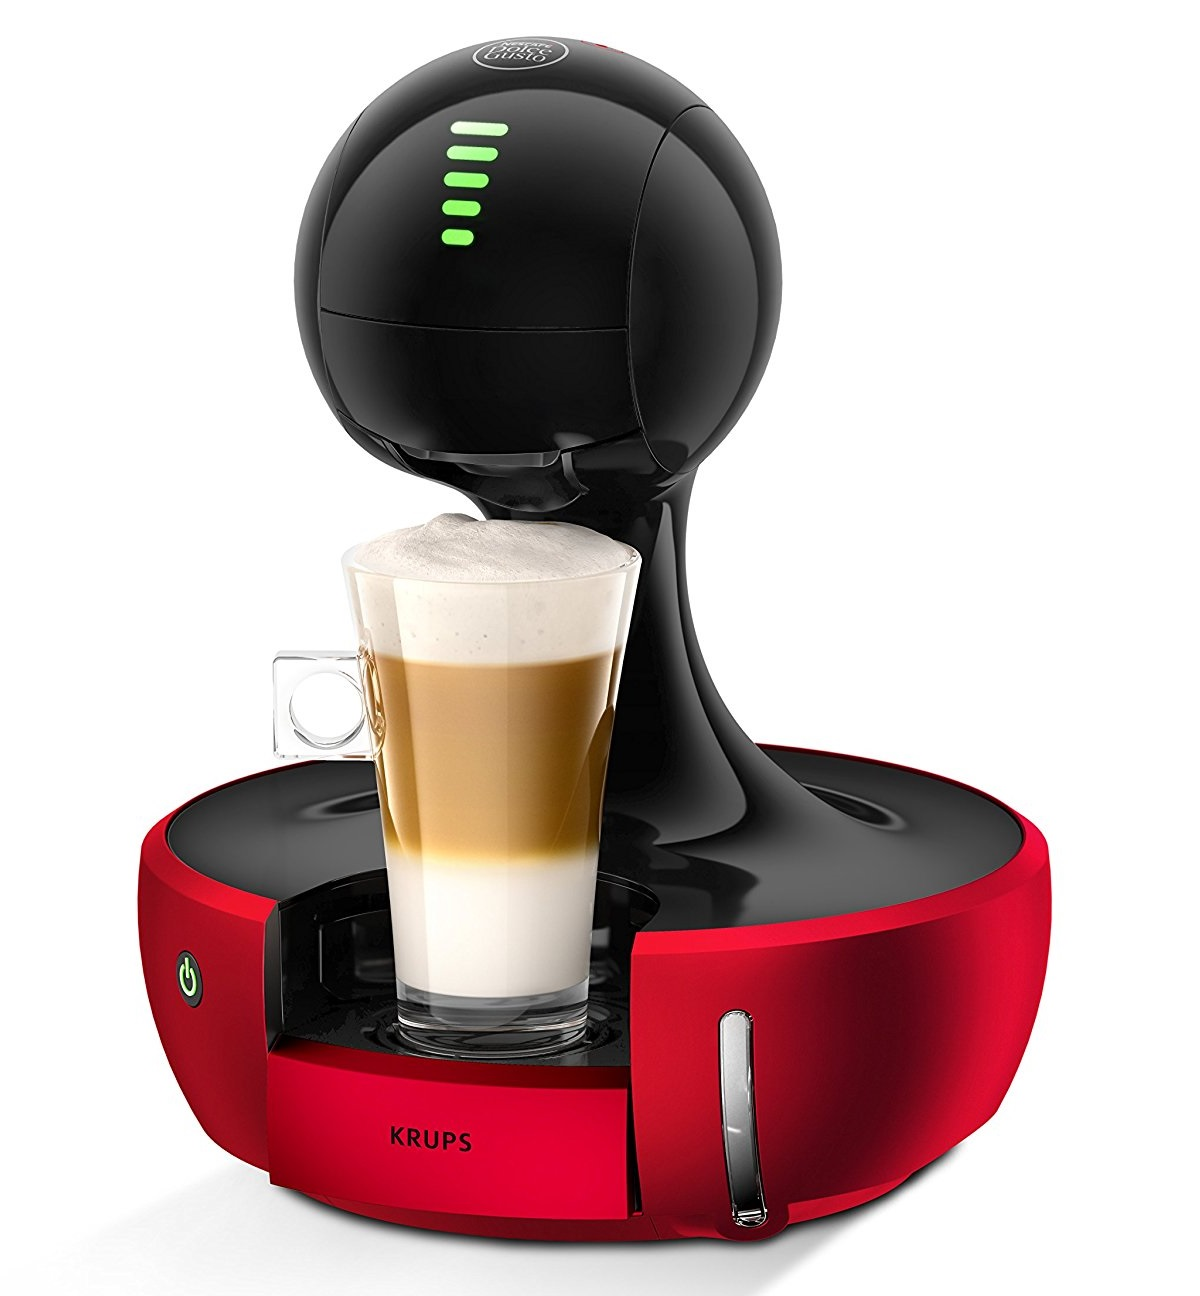 les meilleures machines caf krups dolce gusto comparatif en dec 2017. Black Bedroom Furniture Sets. Home Design Ideas